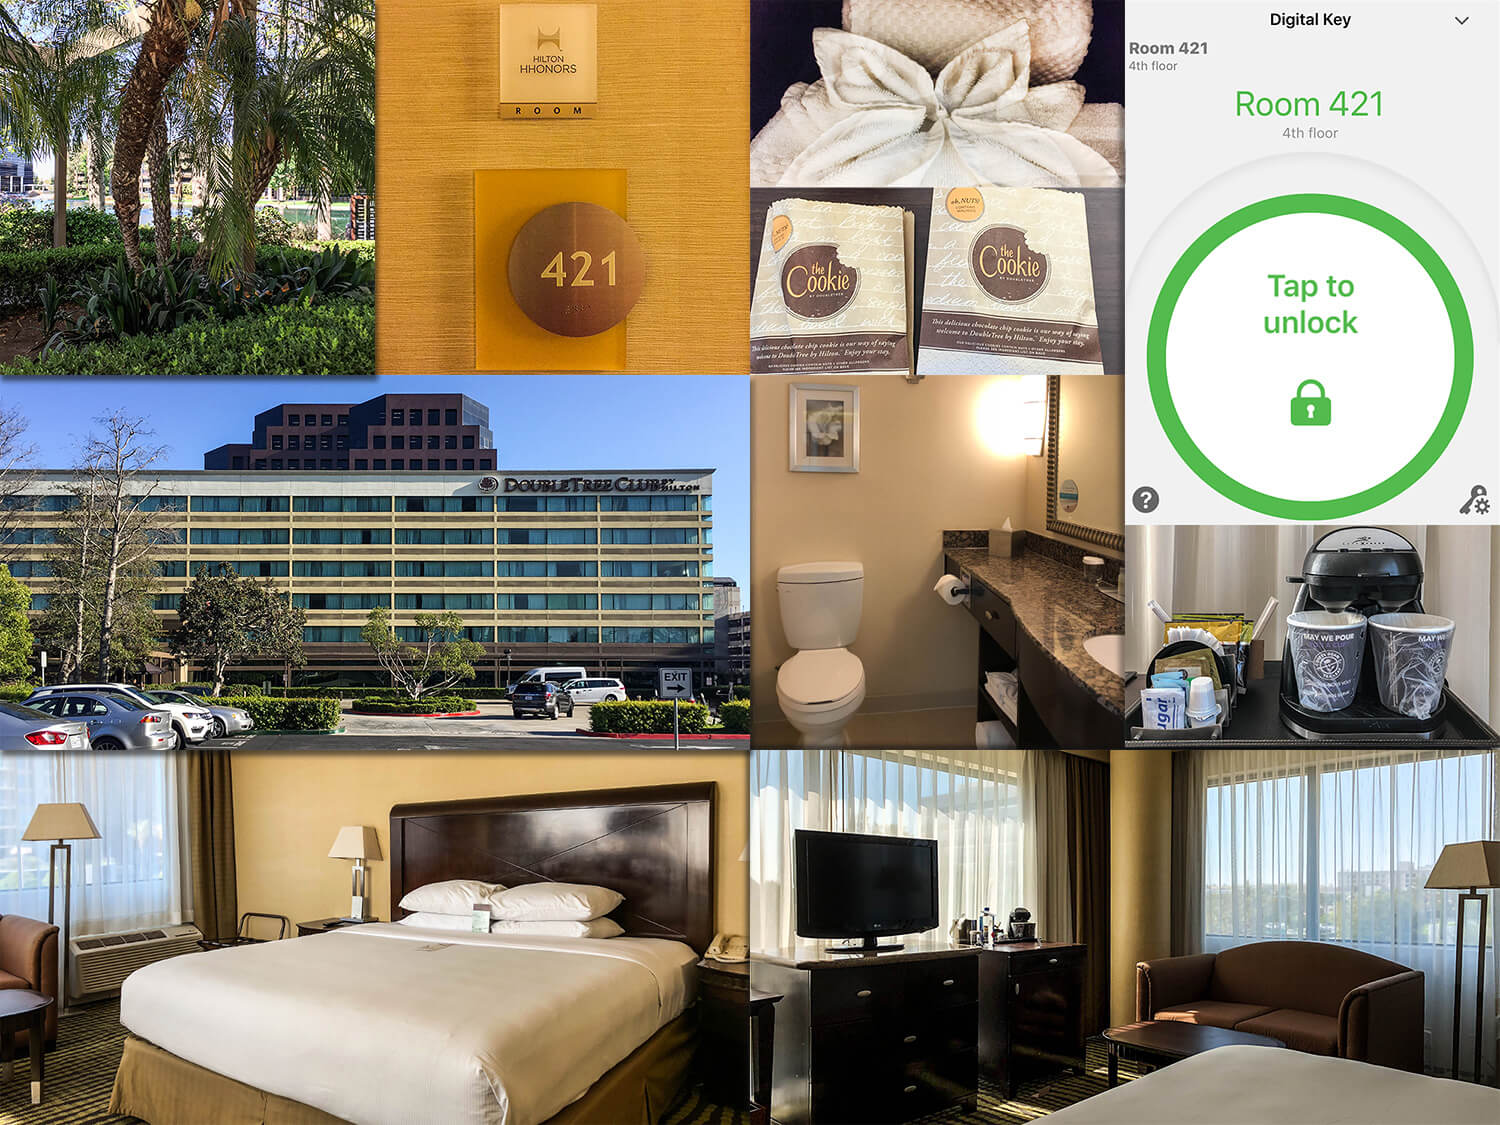 doubletree-club-orange-county-airport-santa-ana,California,Southwest,USA,born4travel.de